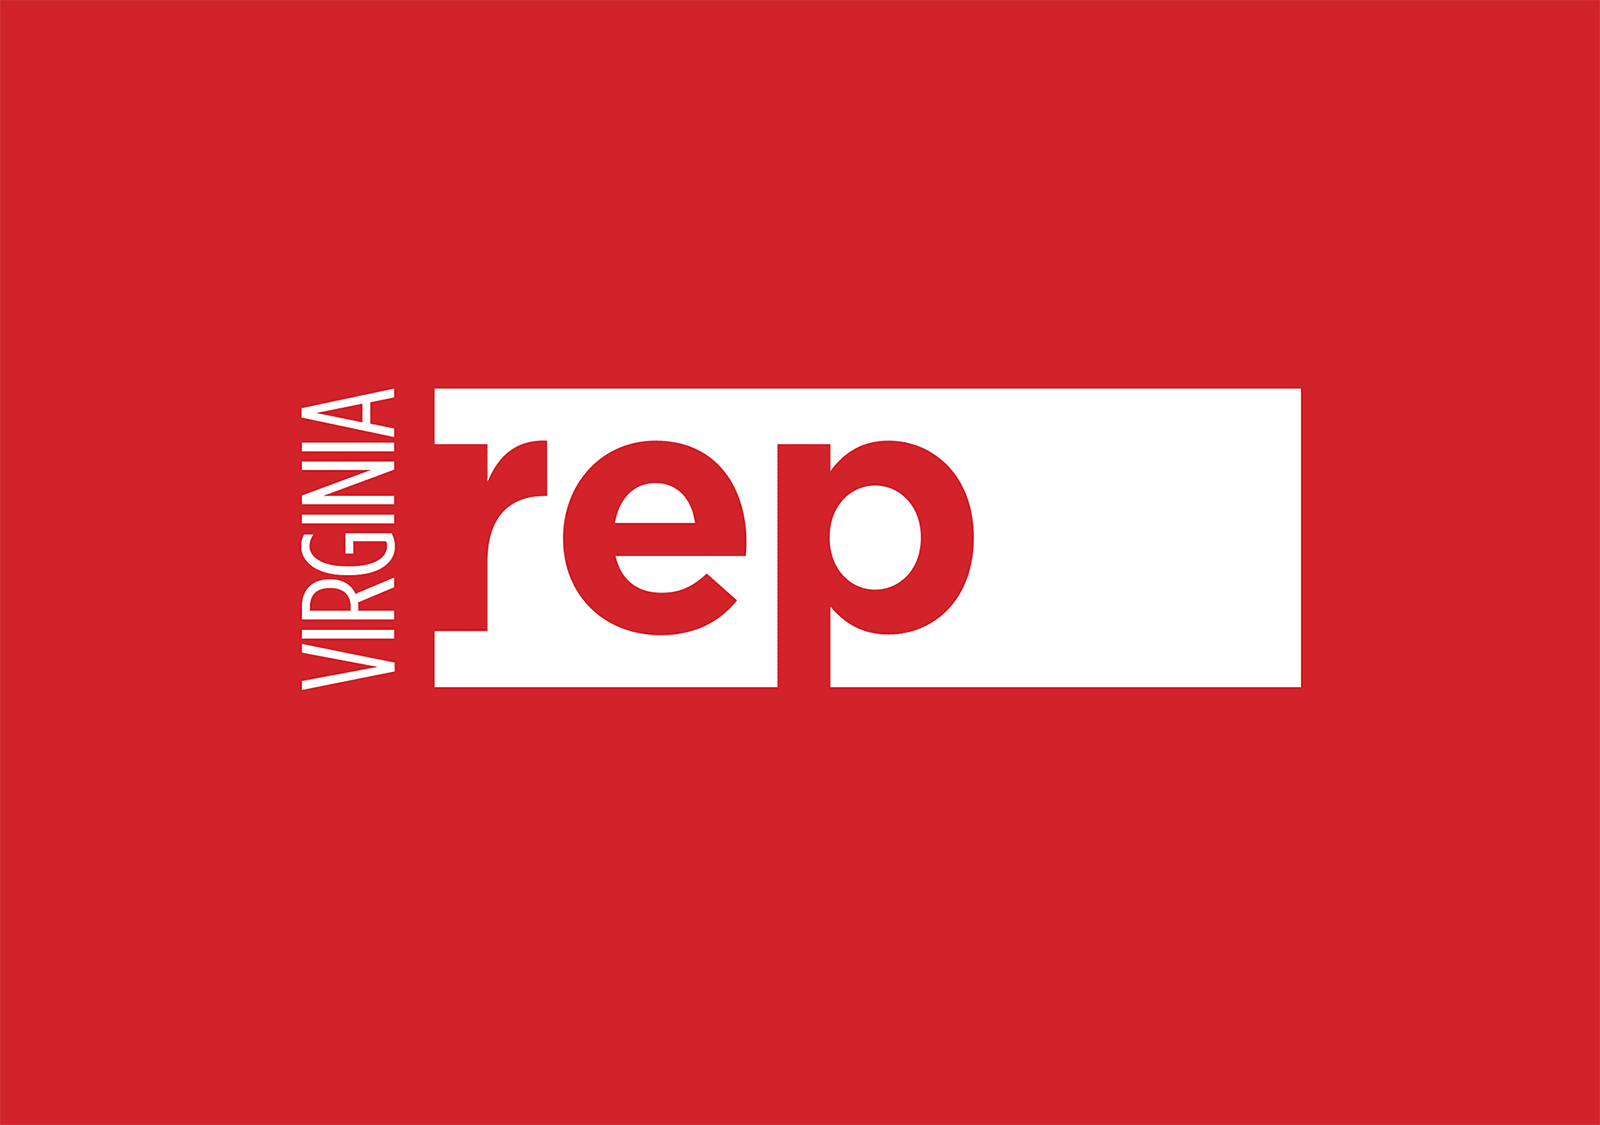 Virginia Rep logo